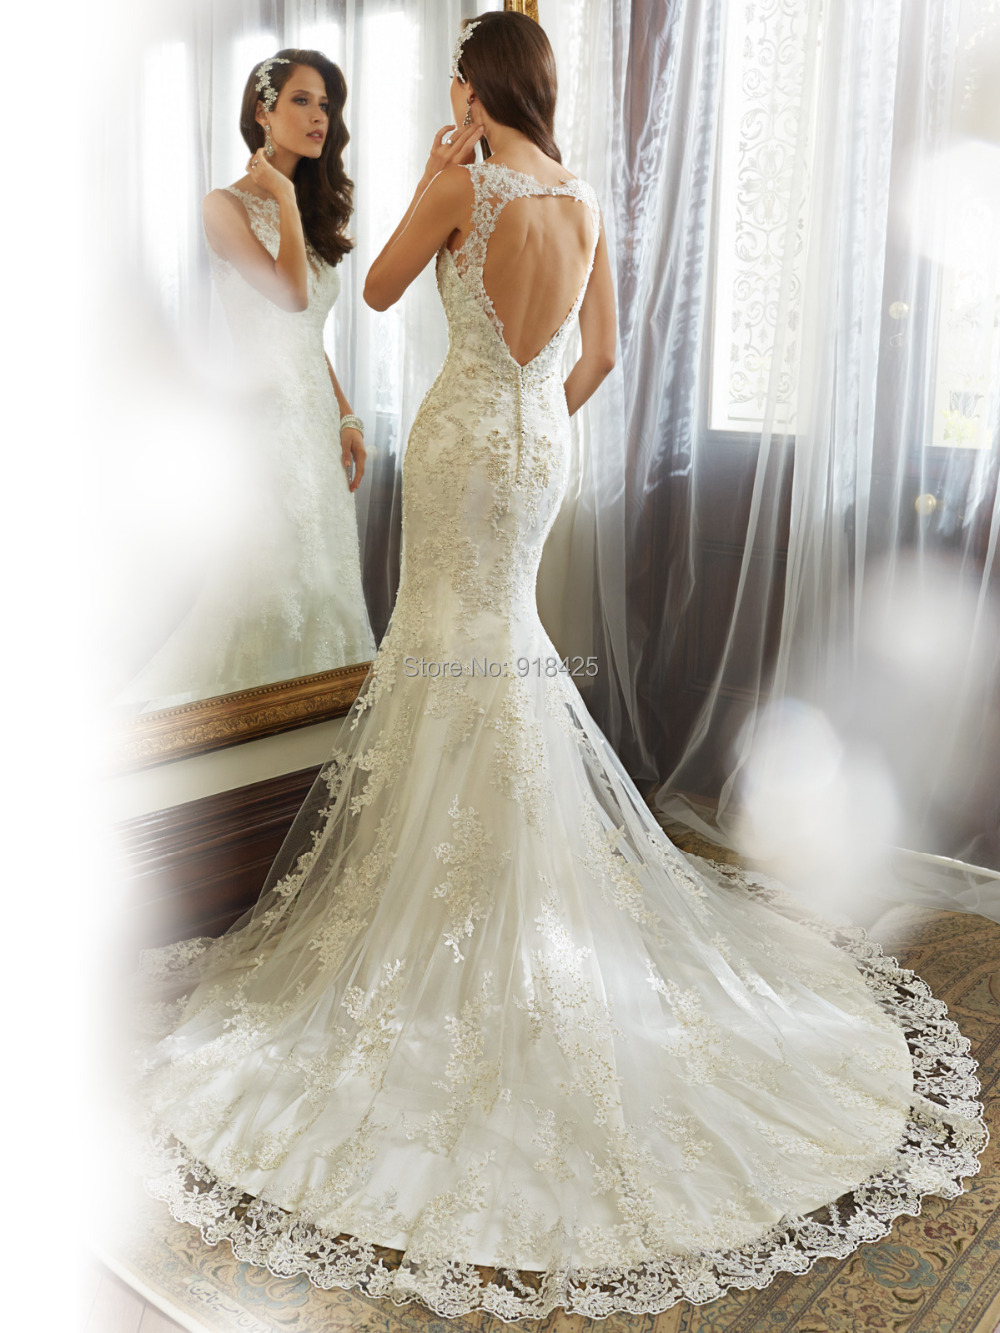 thefleurgirl blogspot wedding dresses mermaid style